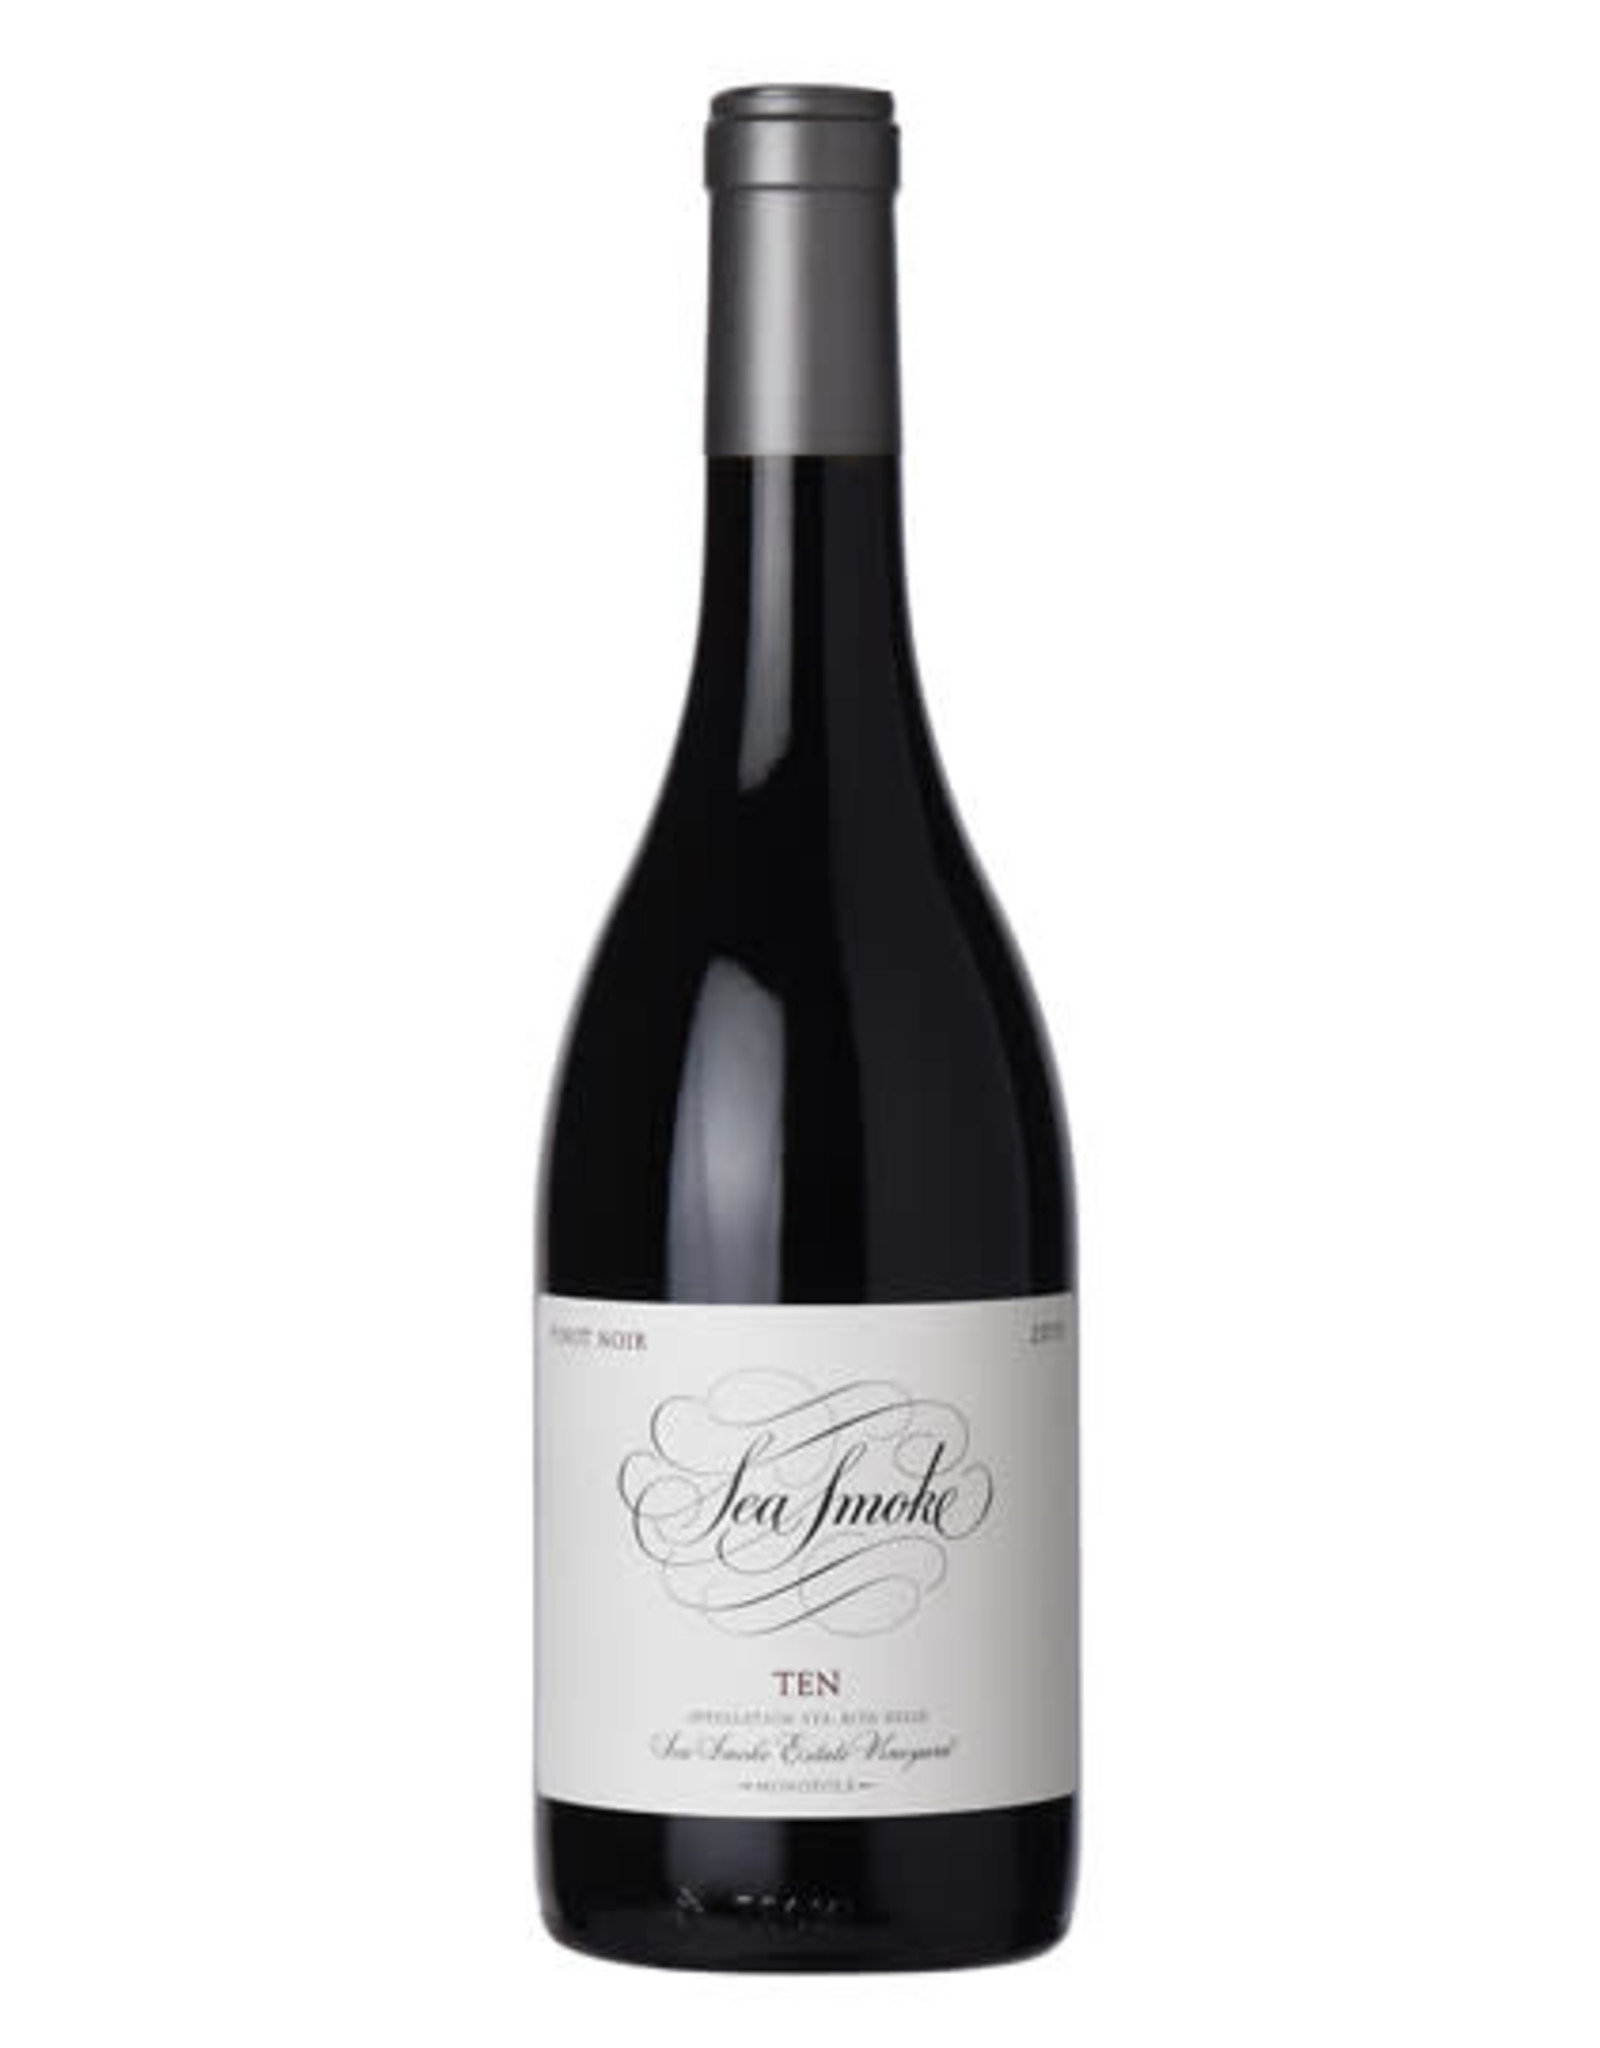 Sea Smoke Ten Sta Rita Hills Pinot Noir 2017